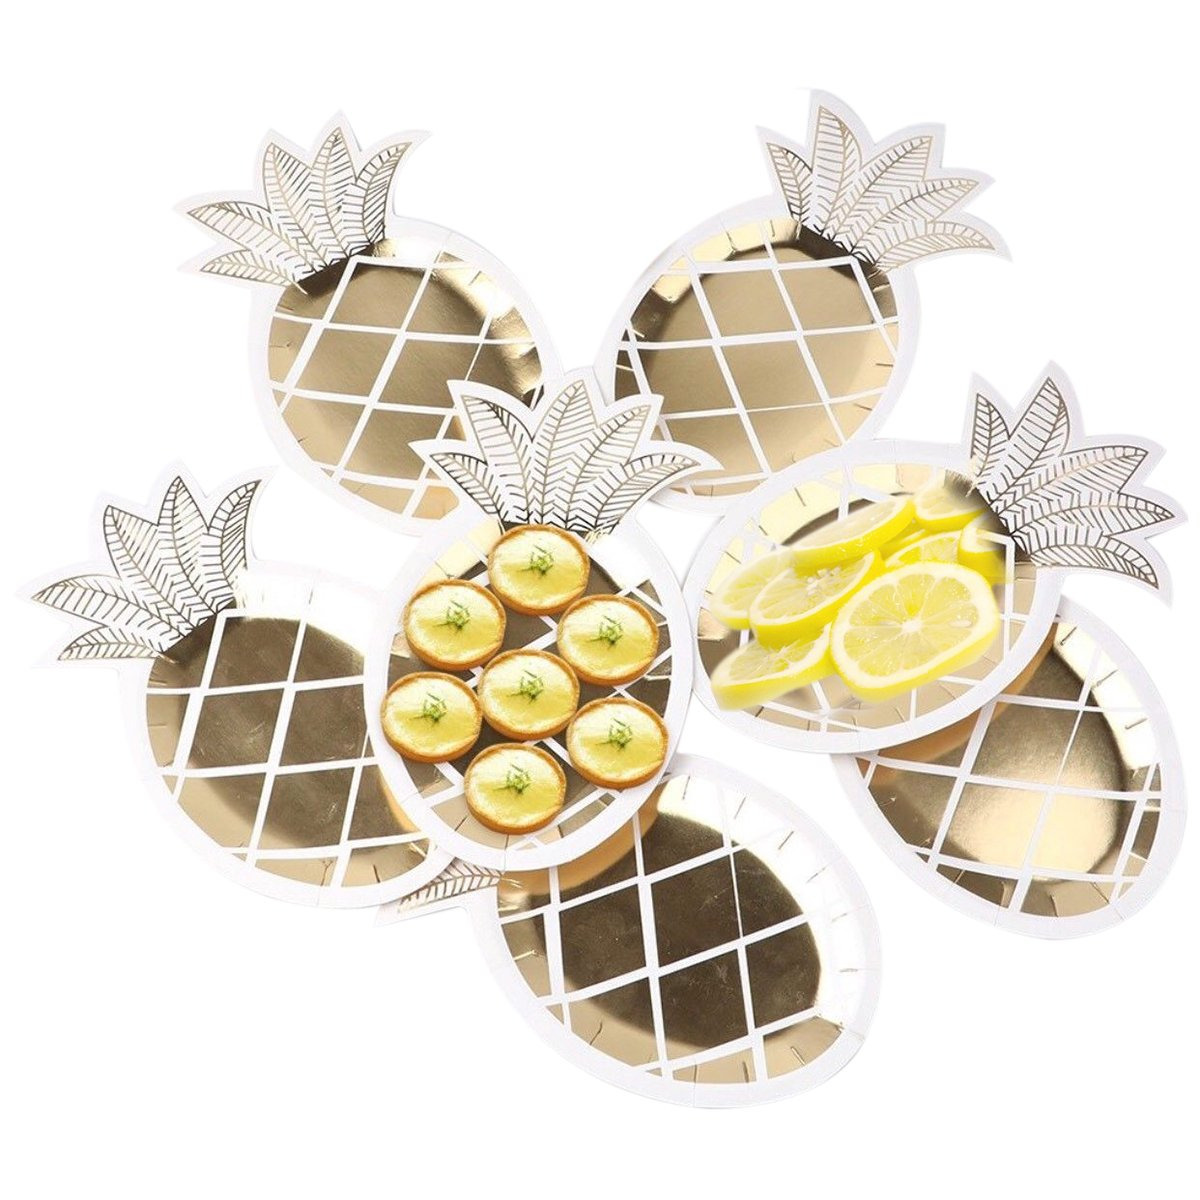 wivarra Party Plates, Disposable Tableware Set 8 pcs Gold Foil Pineapple Party Plates Hawaiian Party Supplies Fruit Pattern Paper Plates for Tropical Jungle BBQ Birthday Party Supplies